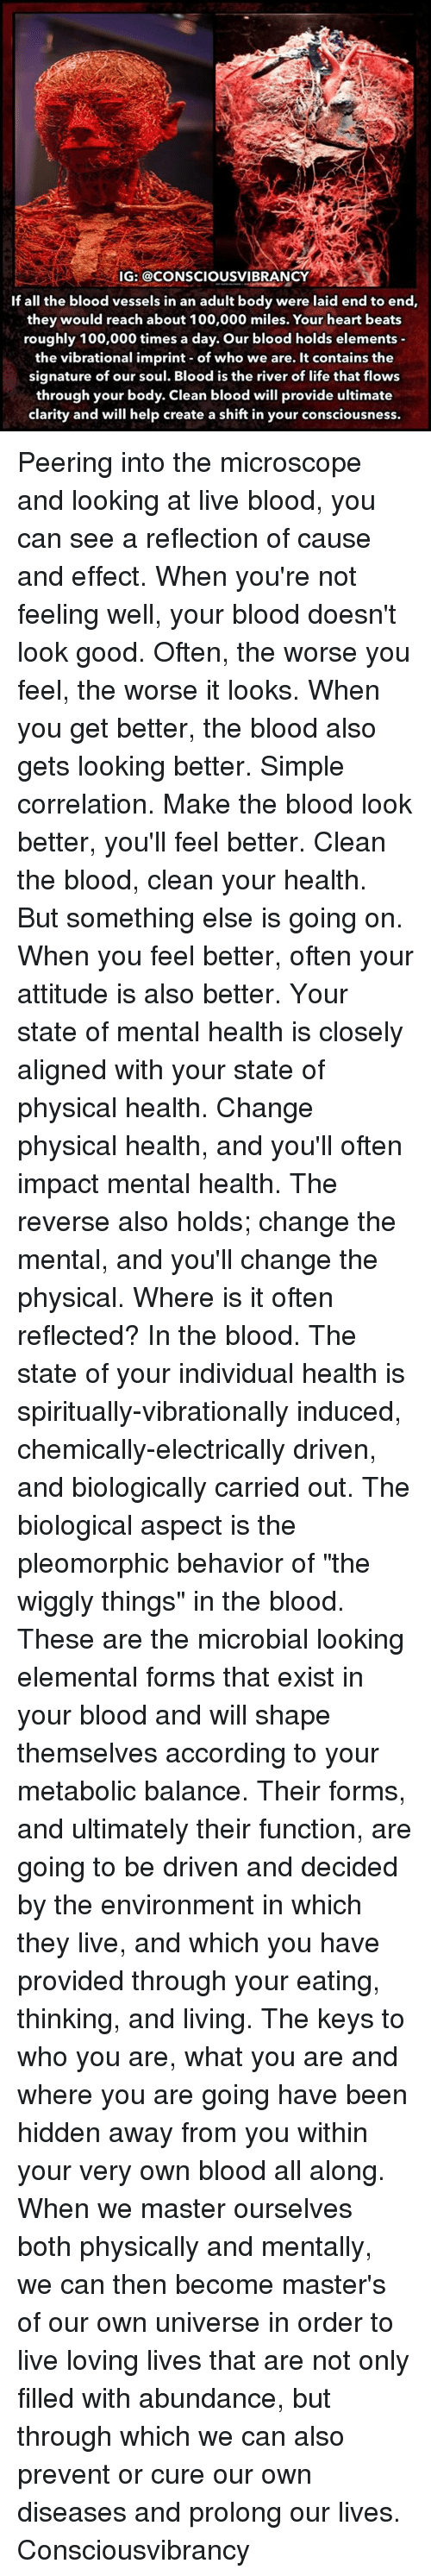 "Peering: IG: @CONSCIOUSVIBRANCY  If all the blood vessels in an adult body were laid end to end,  they would reach about 100,000 miles. Your heart beats  roughly 100,000 times a day. Our blood holds elements  the vibrational imprint of who we are. It contains the  signature of our soul. Blood is the river of life that flows  through your body. Clean blood will provide ultimate  clarity and will help create a shift in your consciousness. Peering into the microscope and looking at live blood, you can see a reflection of cause and effect. When you're not feeling well, your blood doesn't look good. Often, the worse you feel, the worse it looks. When you get better, the blood also gets looking better. Simple correlation. Make the blood look better, you'll feel better. Clean the blood, clean your health. But something else is going on. When you feel better, often your attitude is also better. Your state of mental health is closely aligned with your state of physical health. Change physical health, and you'll often impact mental health. The reverse also holds; change the mental, and you'll change the physical. Where is it often reflected? In the blood. The state of your individual health is spiritually-vibrationally induced, chemically-electrically driven, and biologically carried out. The biological aspect is the pleomorphic behavior of ""the wiggly things"" in the blood. These are the microbial looking elemental forms that exist in your blood and will shape themselves according to your metabolic balance. Their forms, and ultimately their function, are going to be driven and decided by the environment in which they live, and which you have provided through your eating, thinking, and living. The keys to who you are, what you are and where you are going have been hidden away from you within your very own blood all along. When we master ourselves both physically and mentally, we can then become master's of our own universe in order to live loving lives that are not only filled with abundance, but through which we can also prevent or cure our own diseases and prolong our lives. Consciousvibrancy"